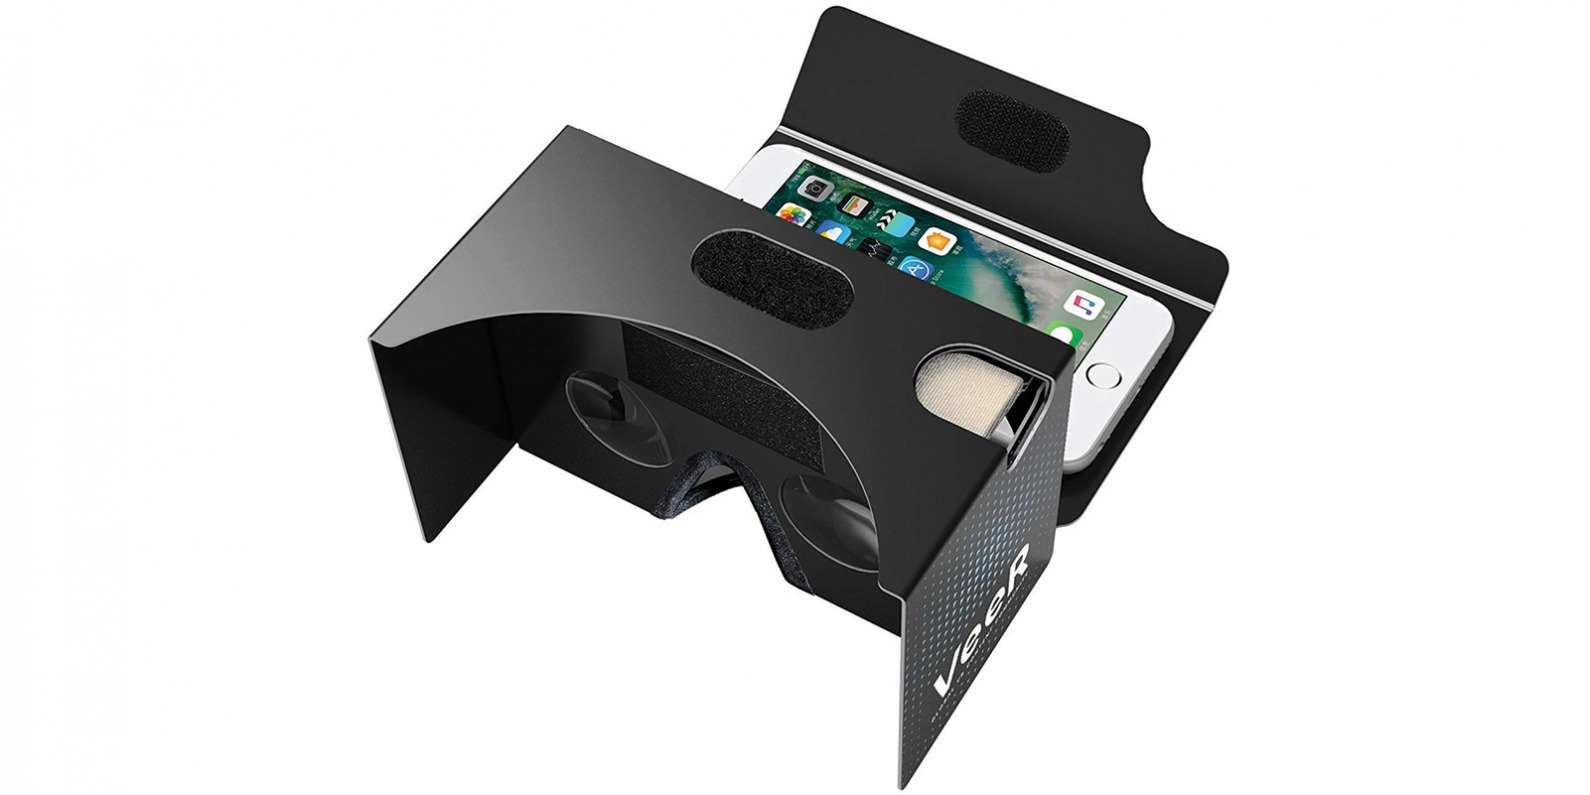 b212fe661471 Best Immersive Virtual Reality (VR) Headsets for Your iPhone ...